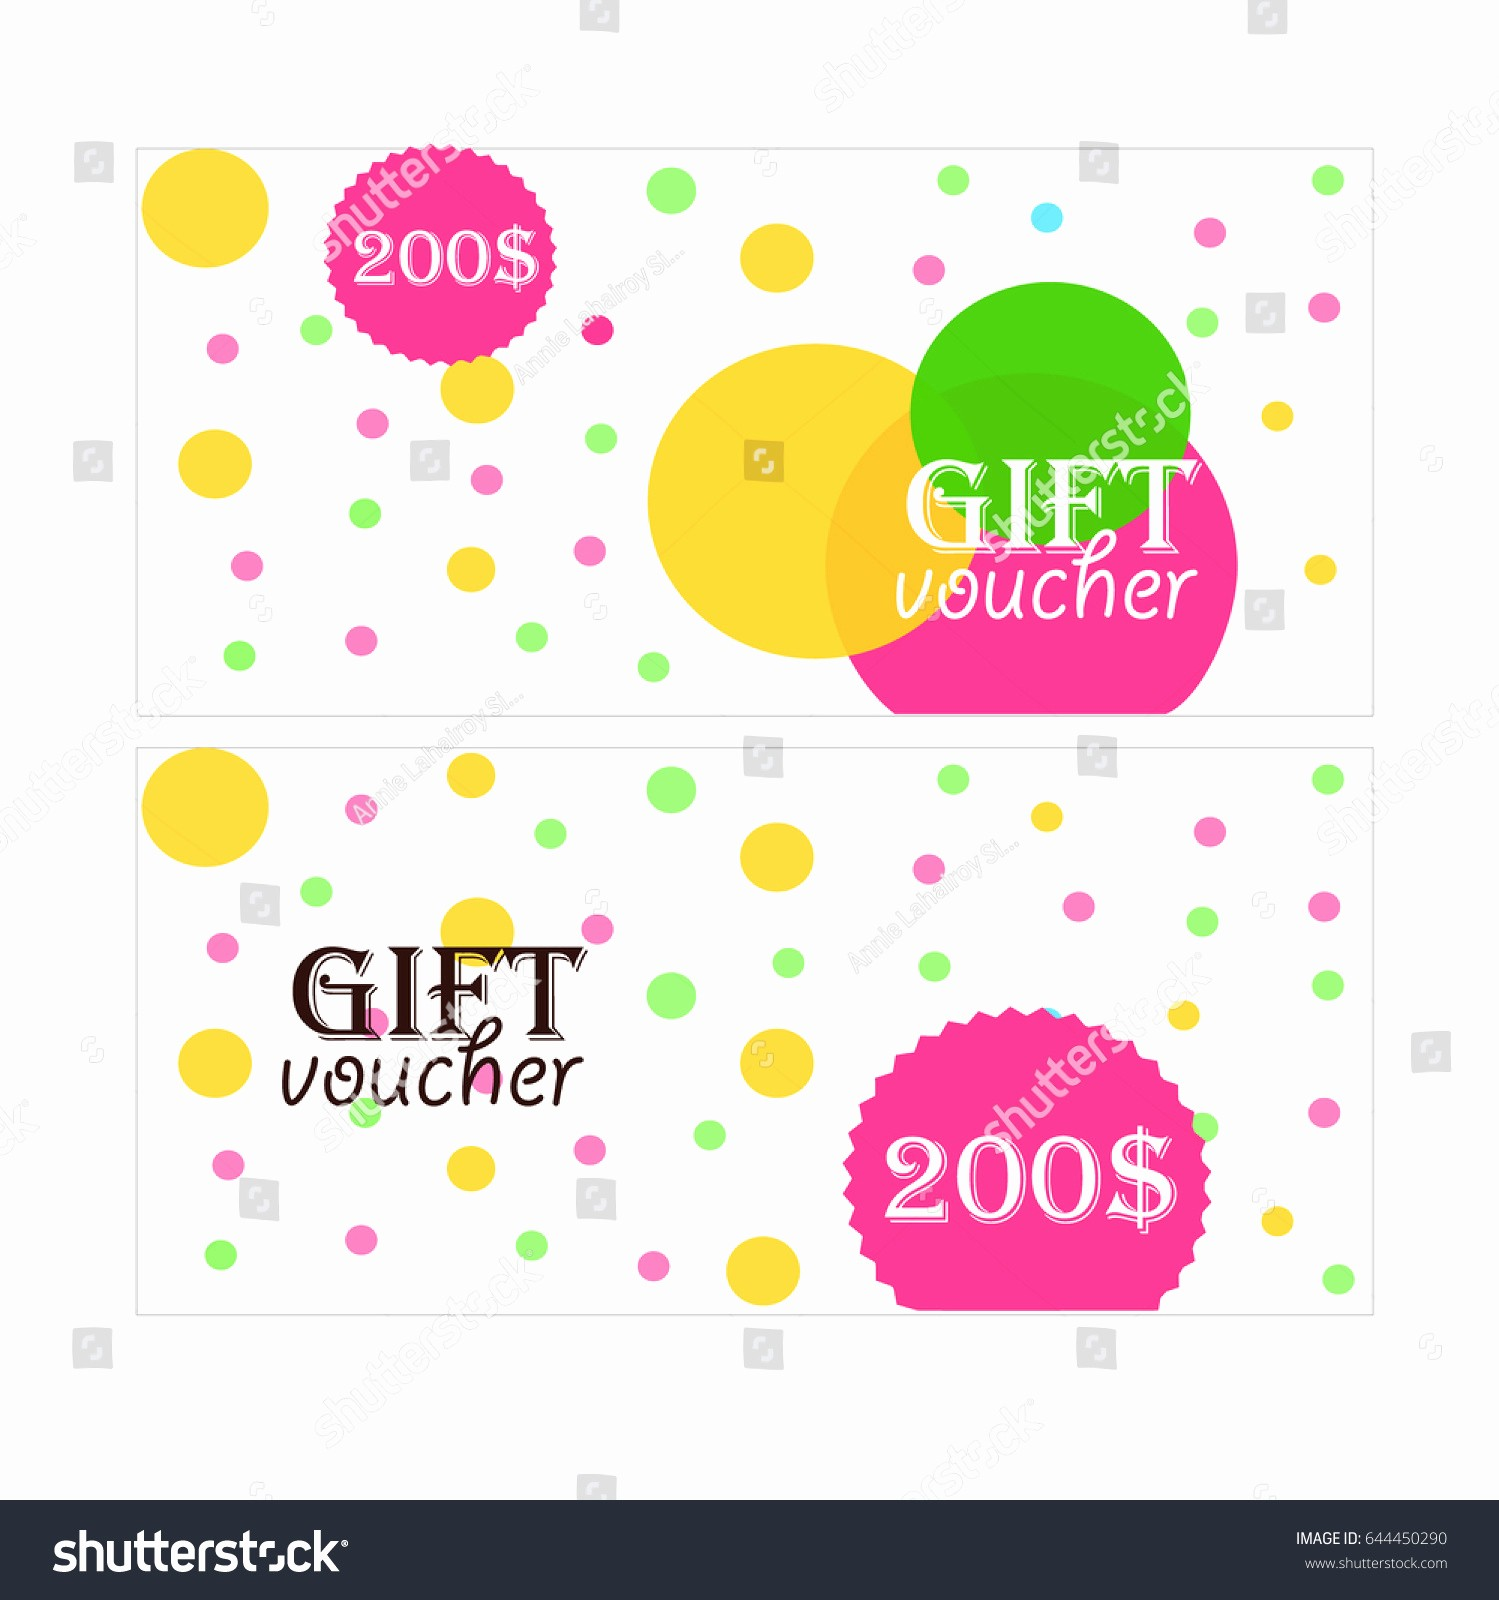 Polka Dot Template for Word Elegant Contemporary Polka Dot Template Free Professional